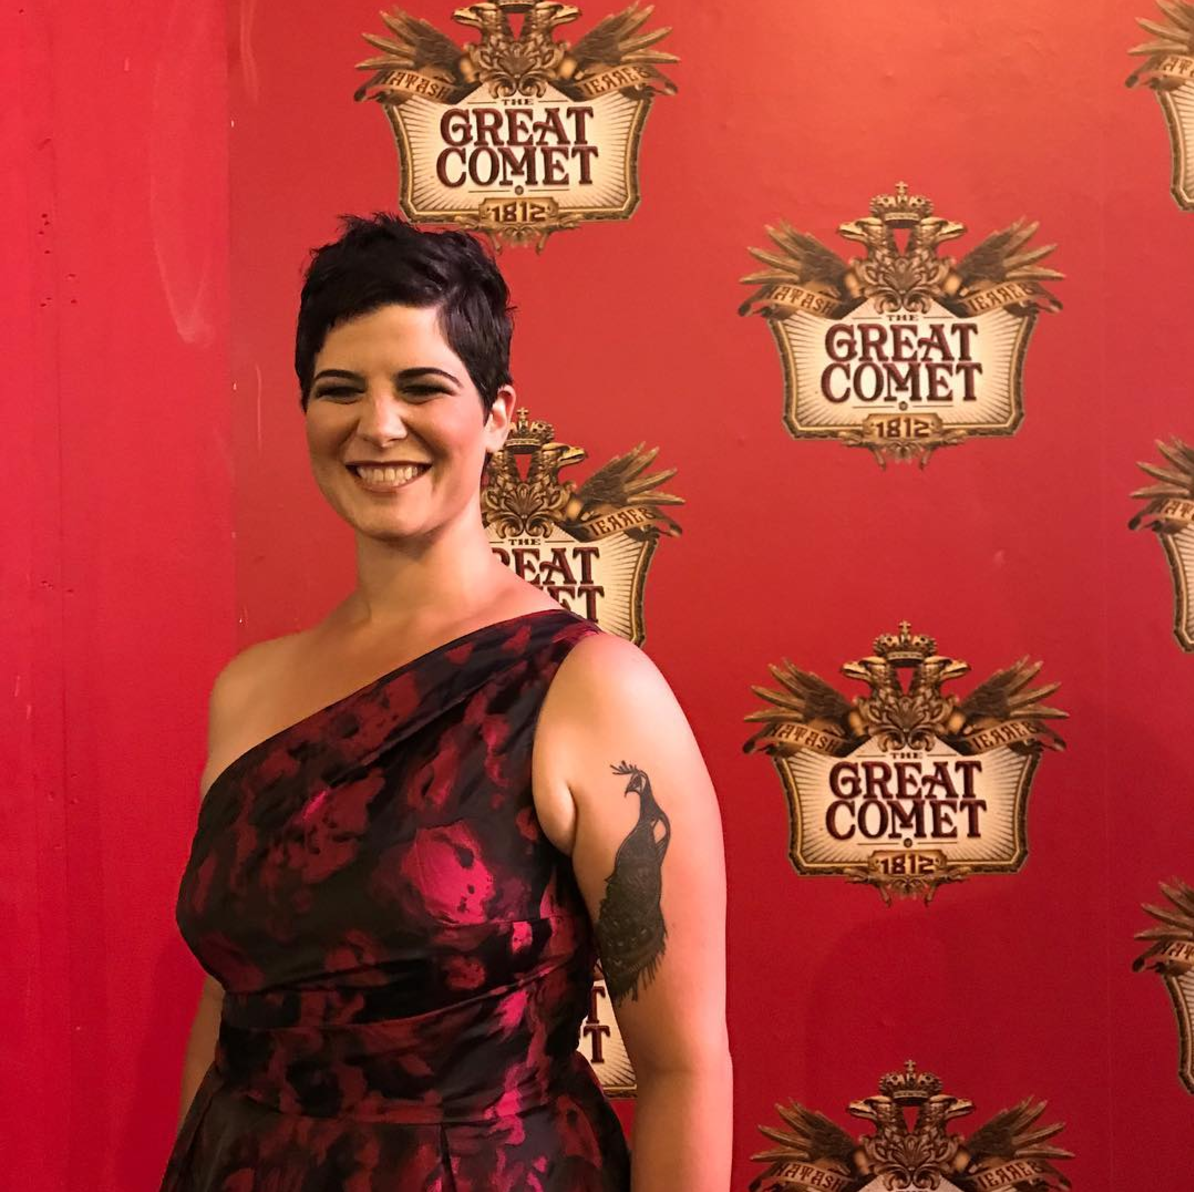 Megan celebrating the opening of The Great Comet at Imperial Theatre.